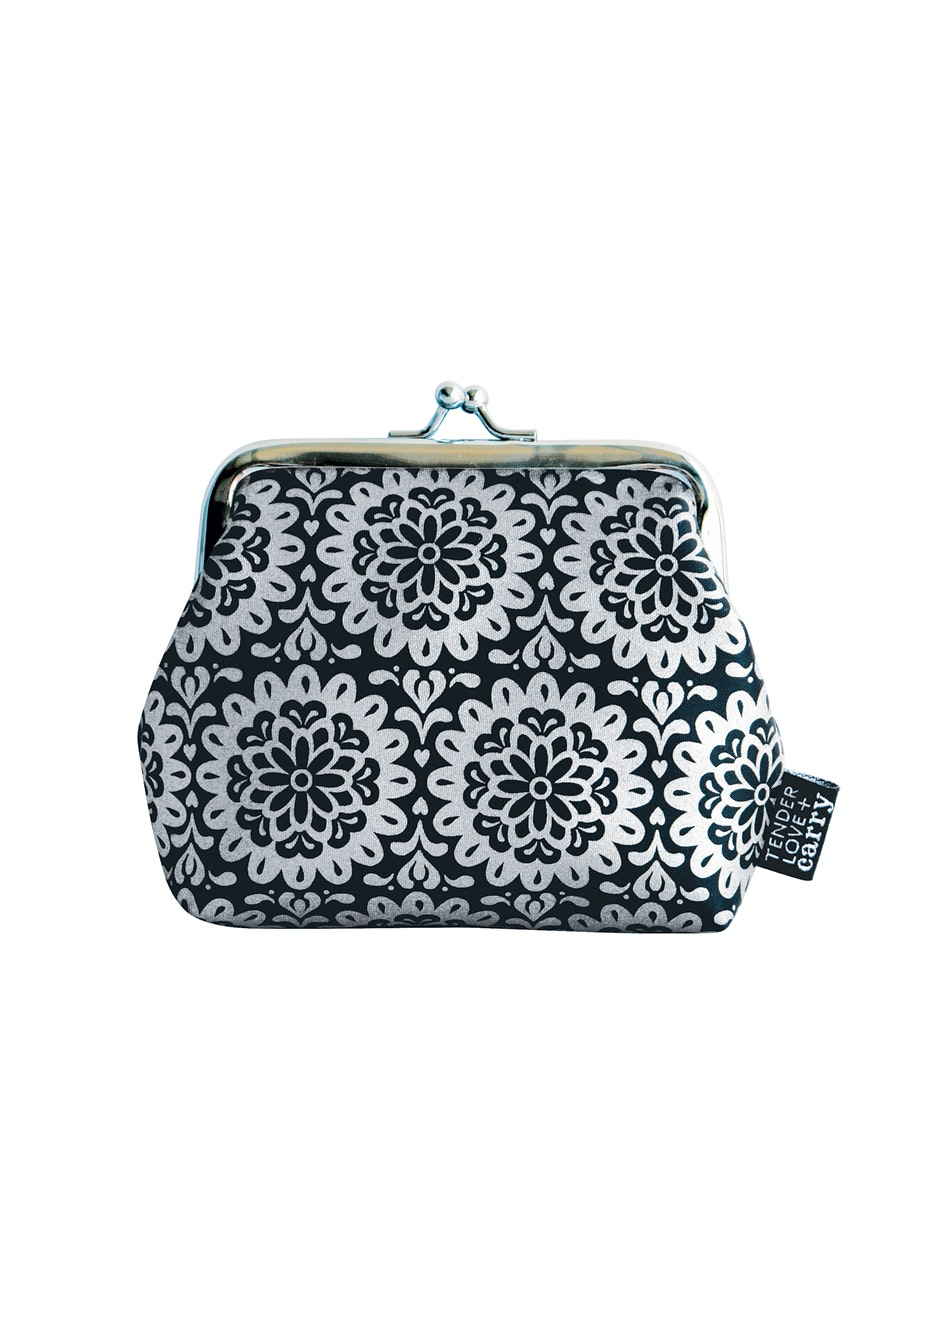 TL+C - Time To Shine Lippie Purse - Print